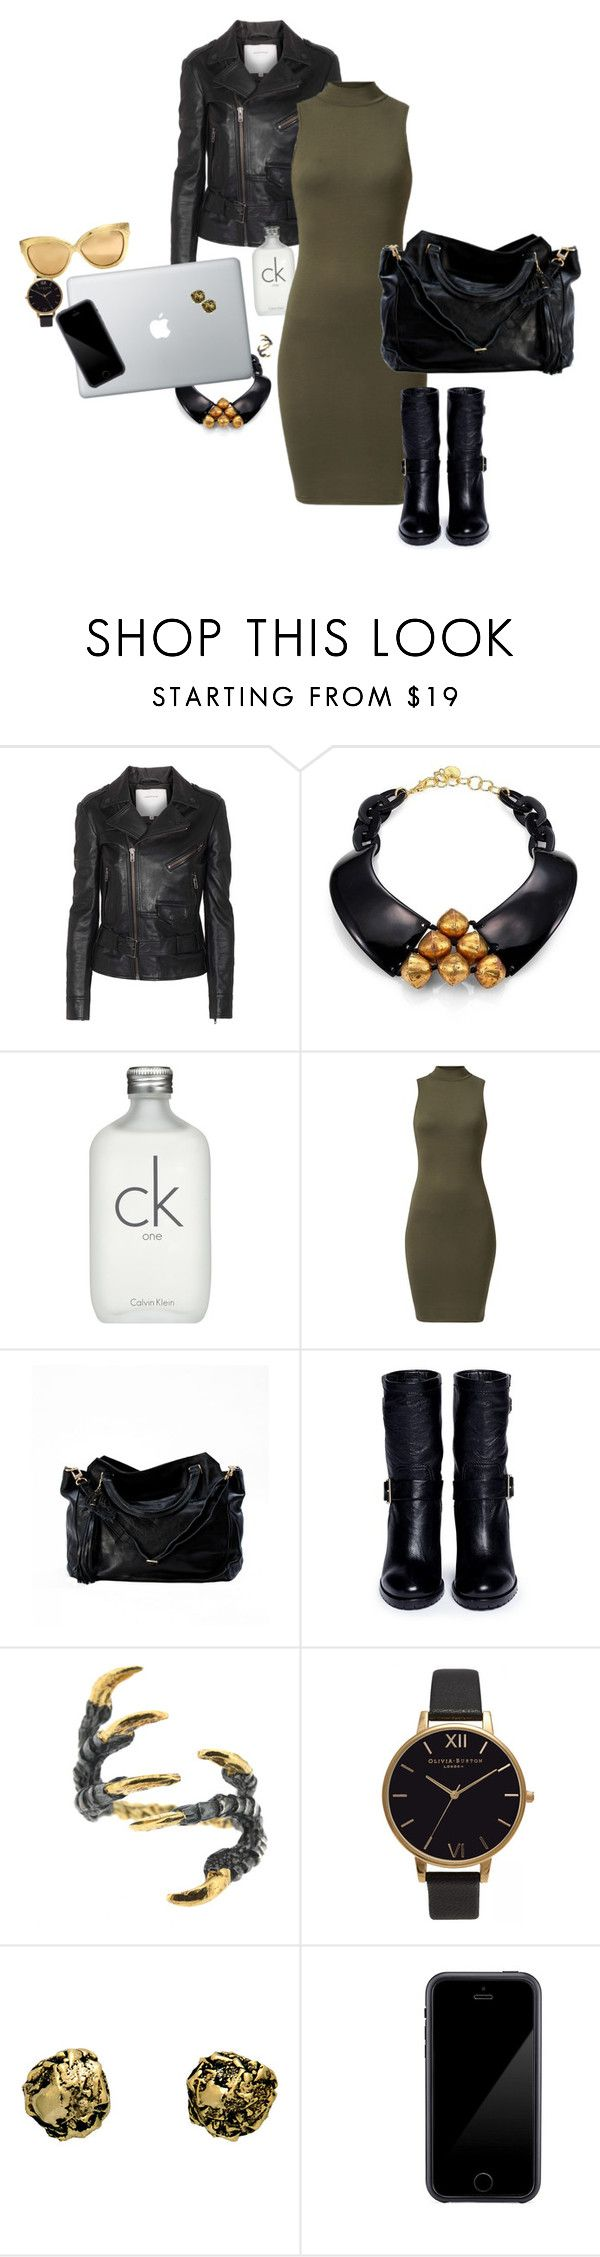 """High neck dress"" by nastiarl on Polyvore featuring moda, Surface To Air, Nest, Calvin Klein, Jimmy Choo, Tessa Metcalfe, Olivia Burton, Kamryn Dame, Squair y Linda Farrow"